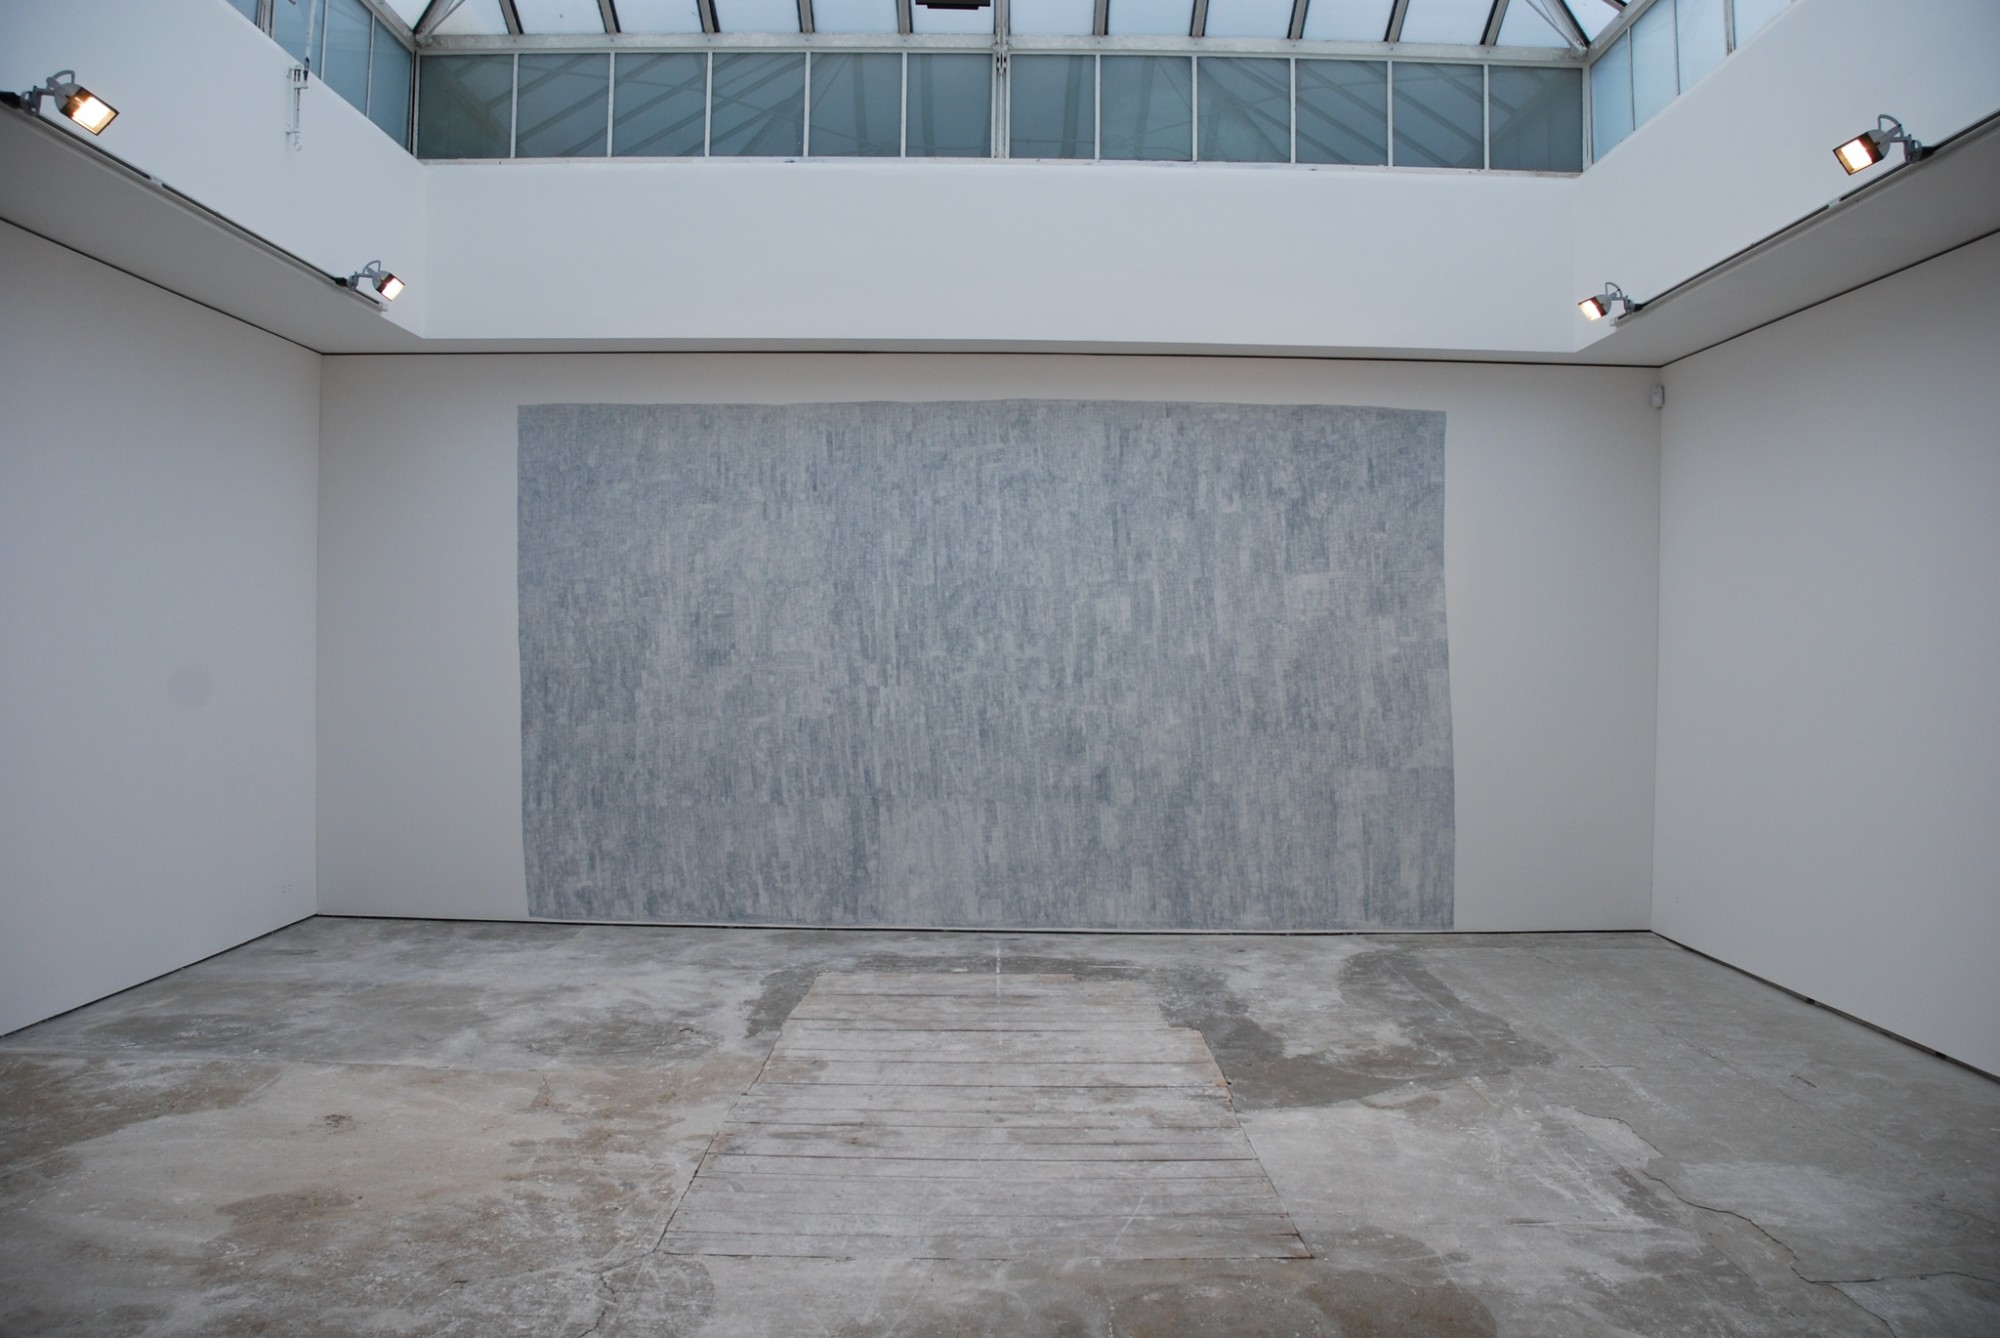 Untitled (Wall Drawing)